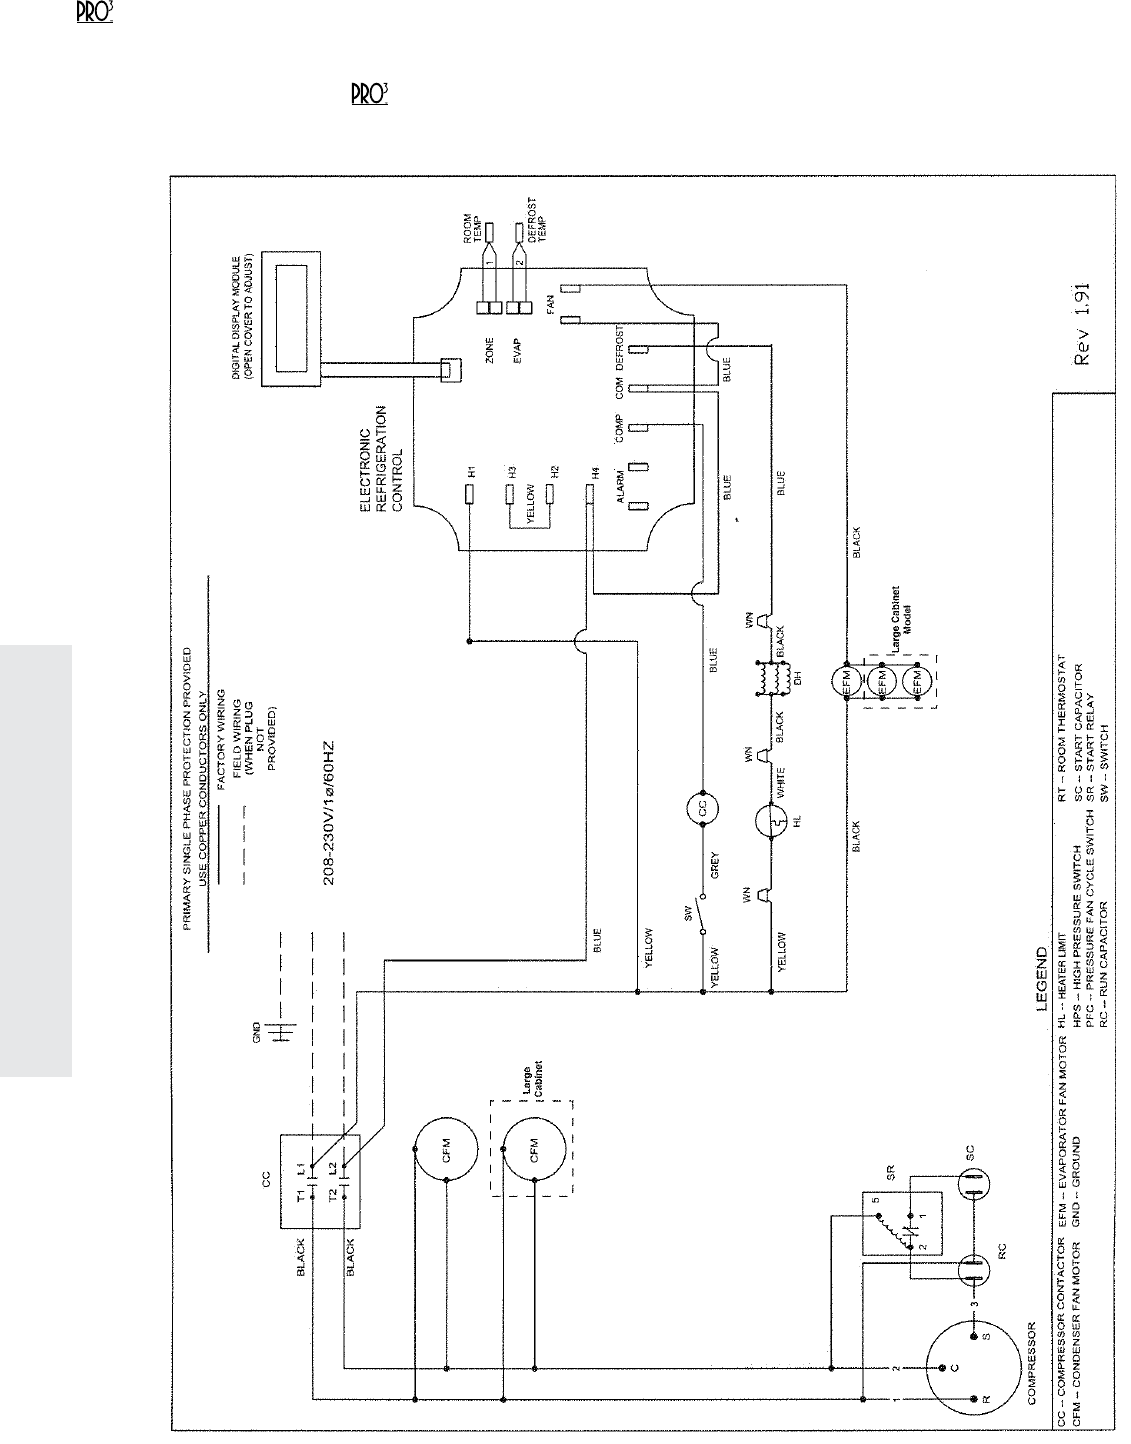 defrost termination switch wiring diagram sure power battery isolator heatcraft evap freezer get free image